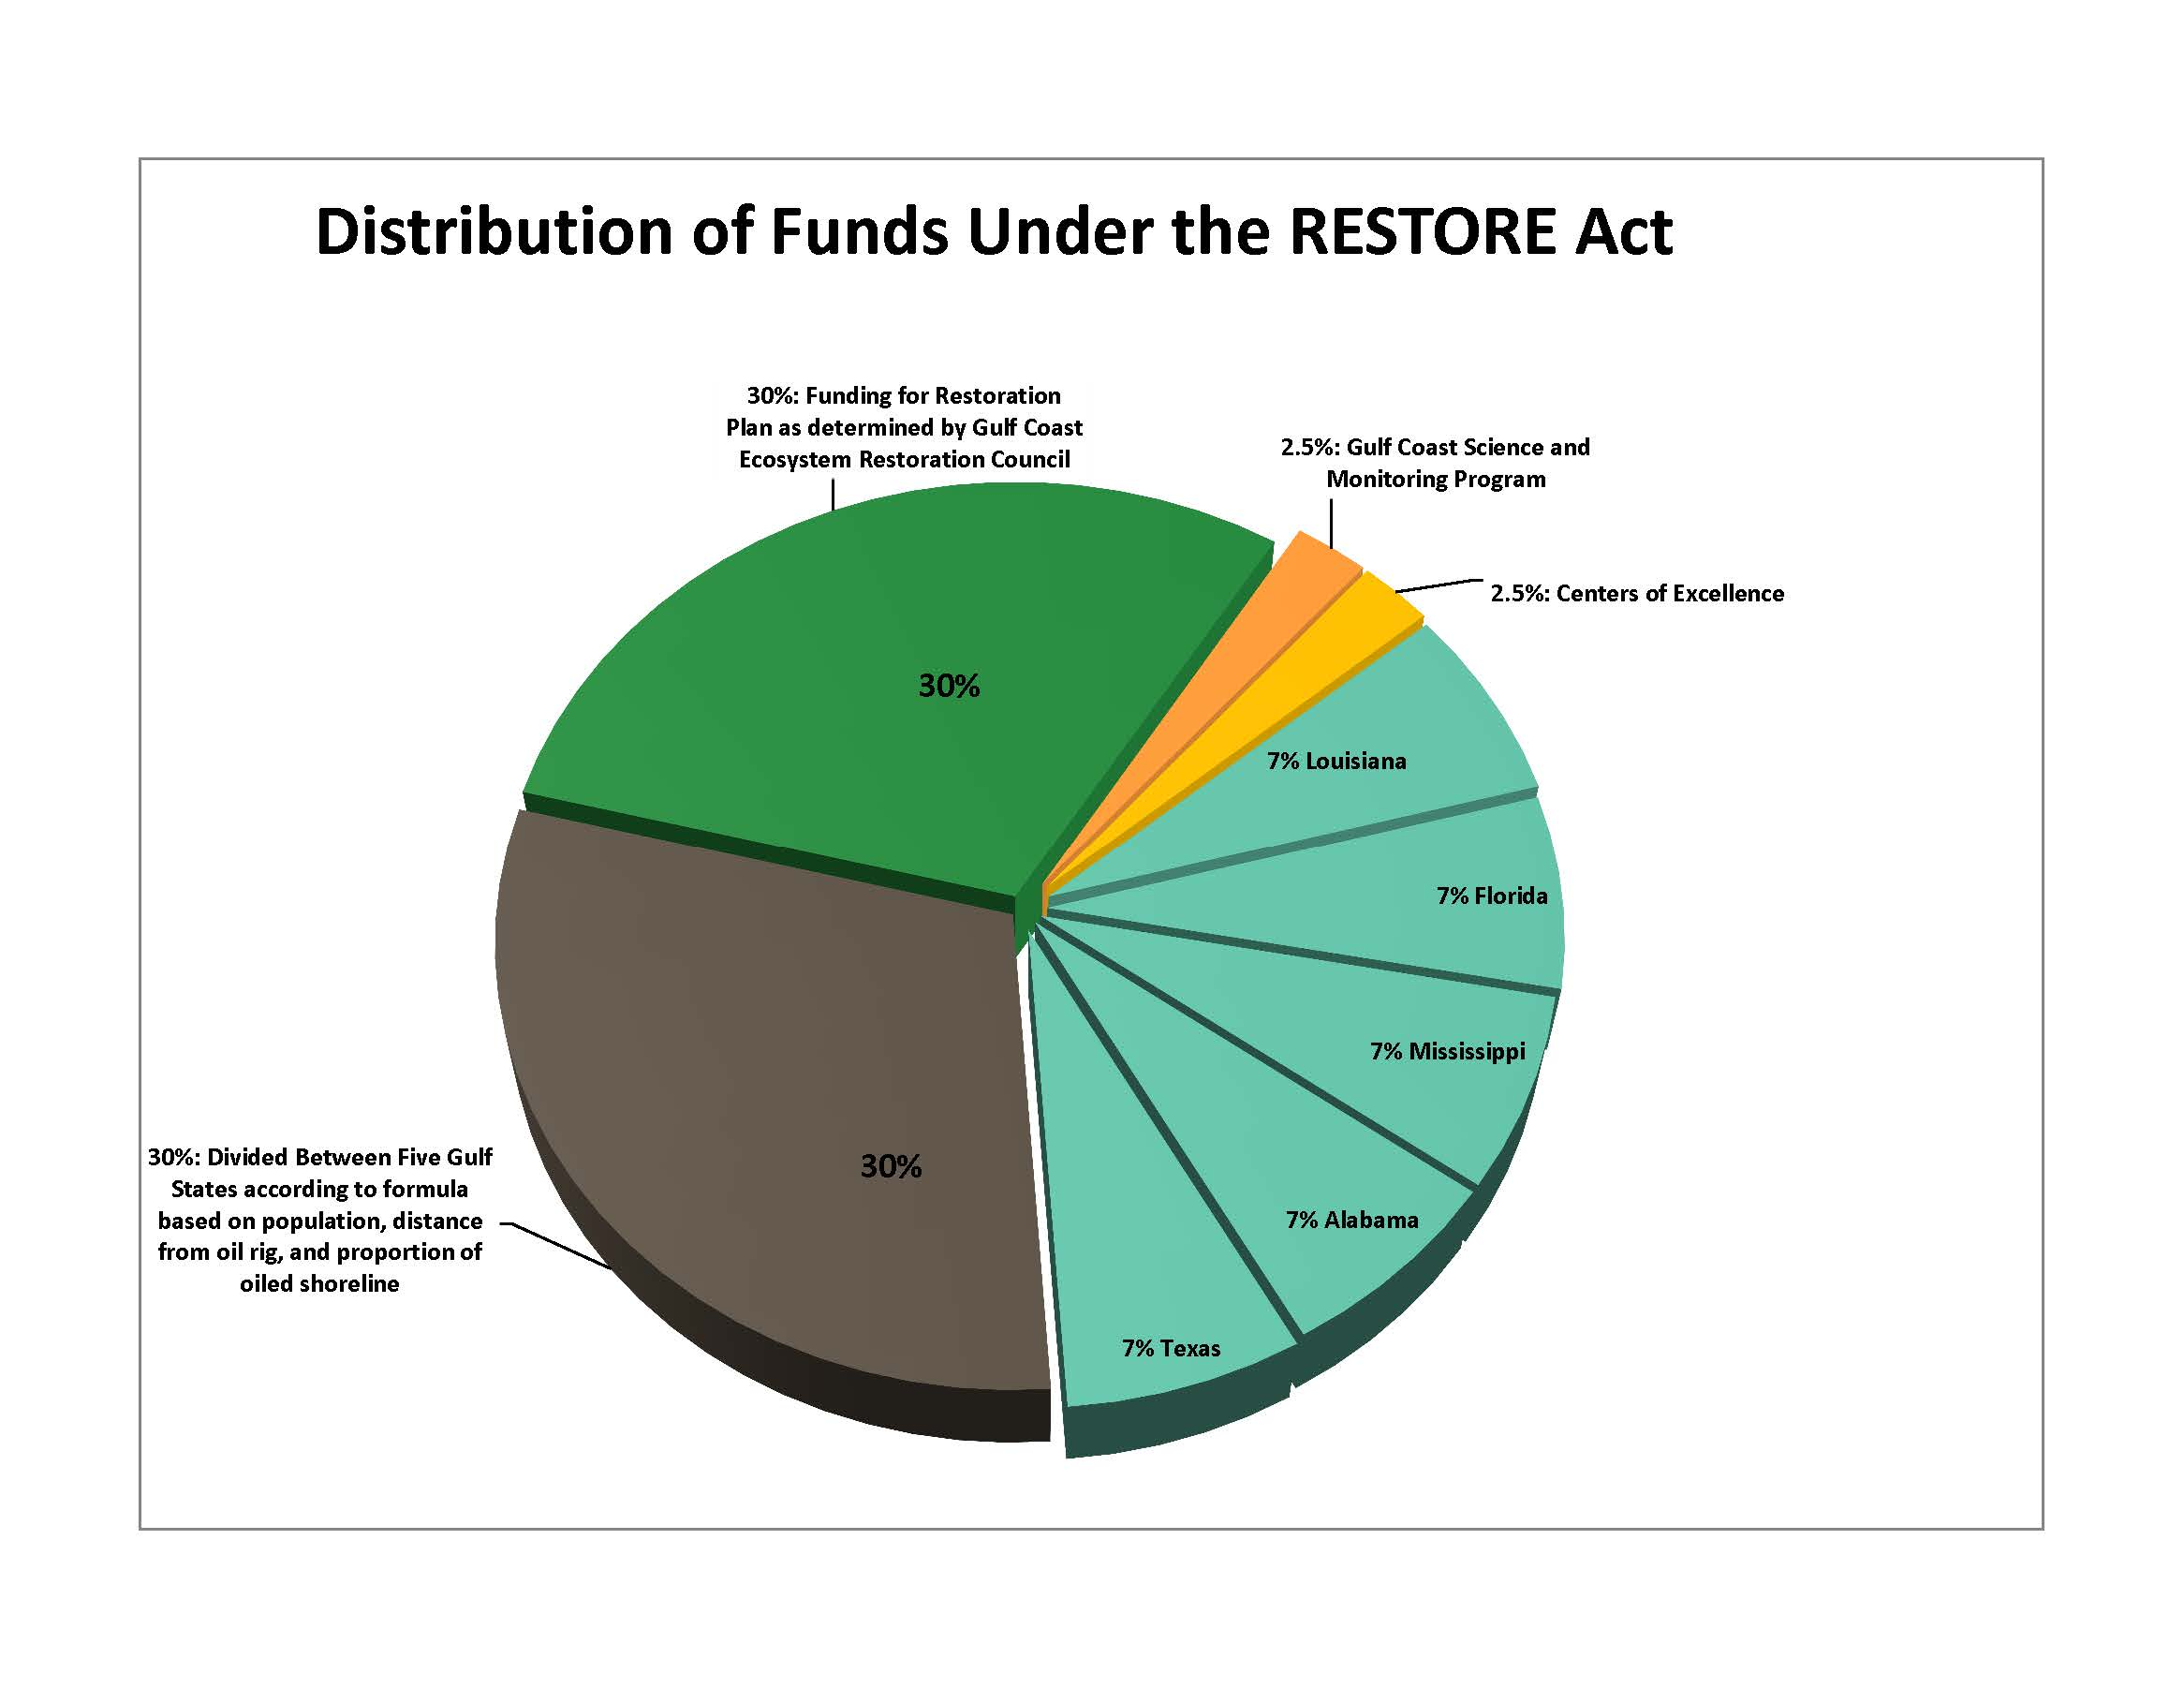 Public meetings in Louisiana to solicit feedback on RESTORE Council funding distribution